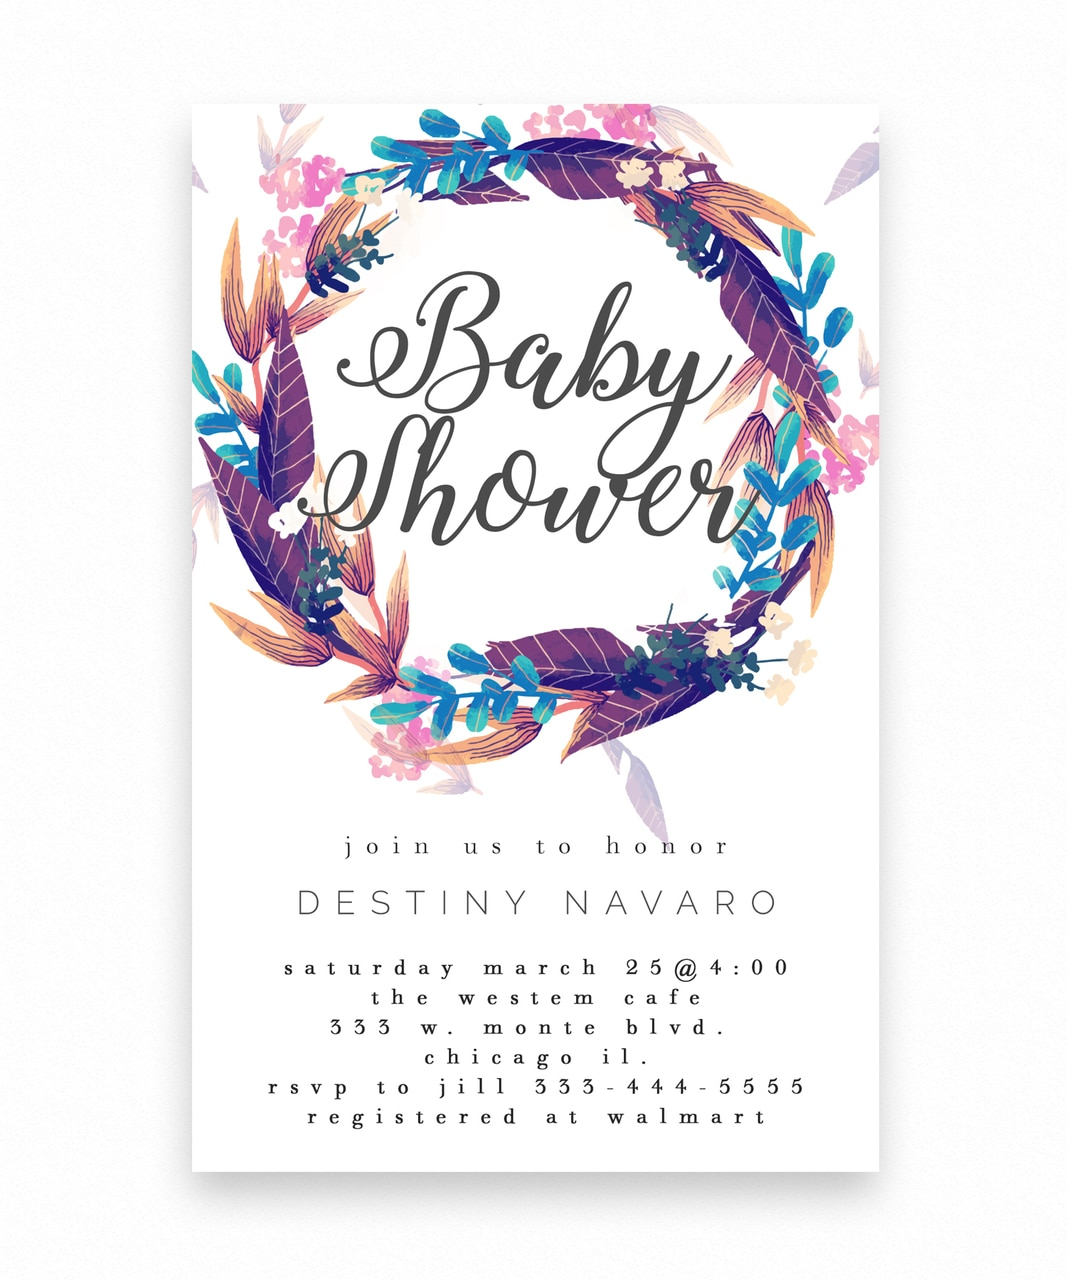 Full Size of Baby Shower:63+ Delightful Cheap Baby Shower Invitations Image Inspirations Cheap Baby Shower Invitations Baby Shower Party Themes Baby Shower Props Baby Shower Stuff Baby Shower Restaurants Baby Shower Favors To Make Boho Floral Wreath Baby Shower Invitation